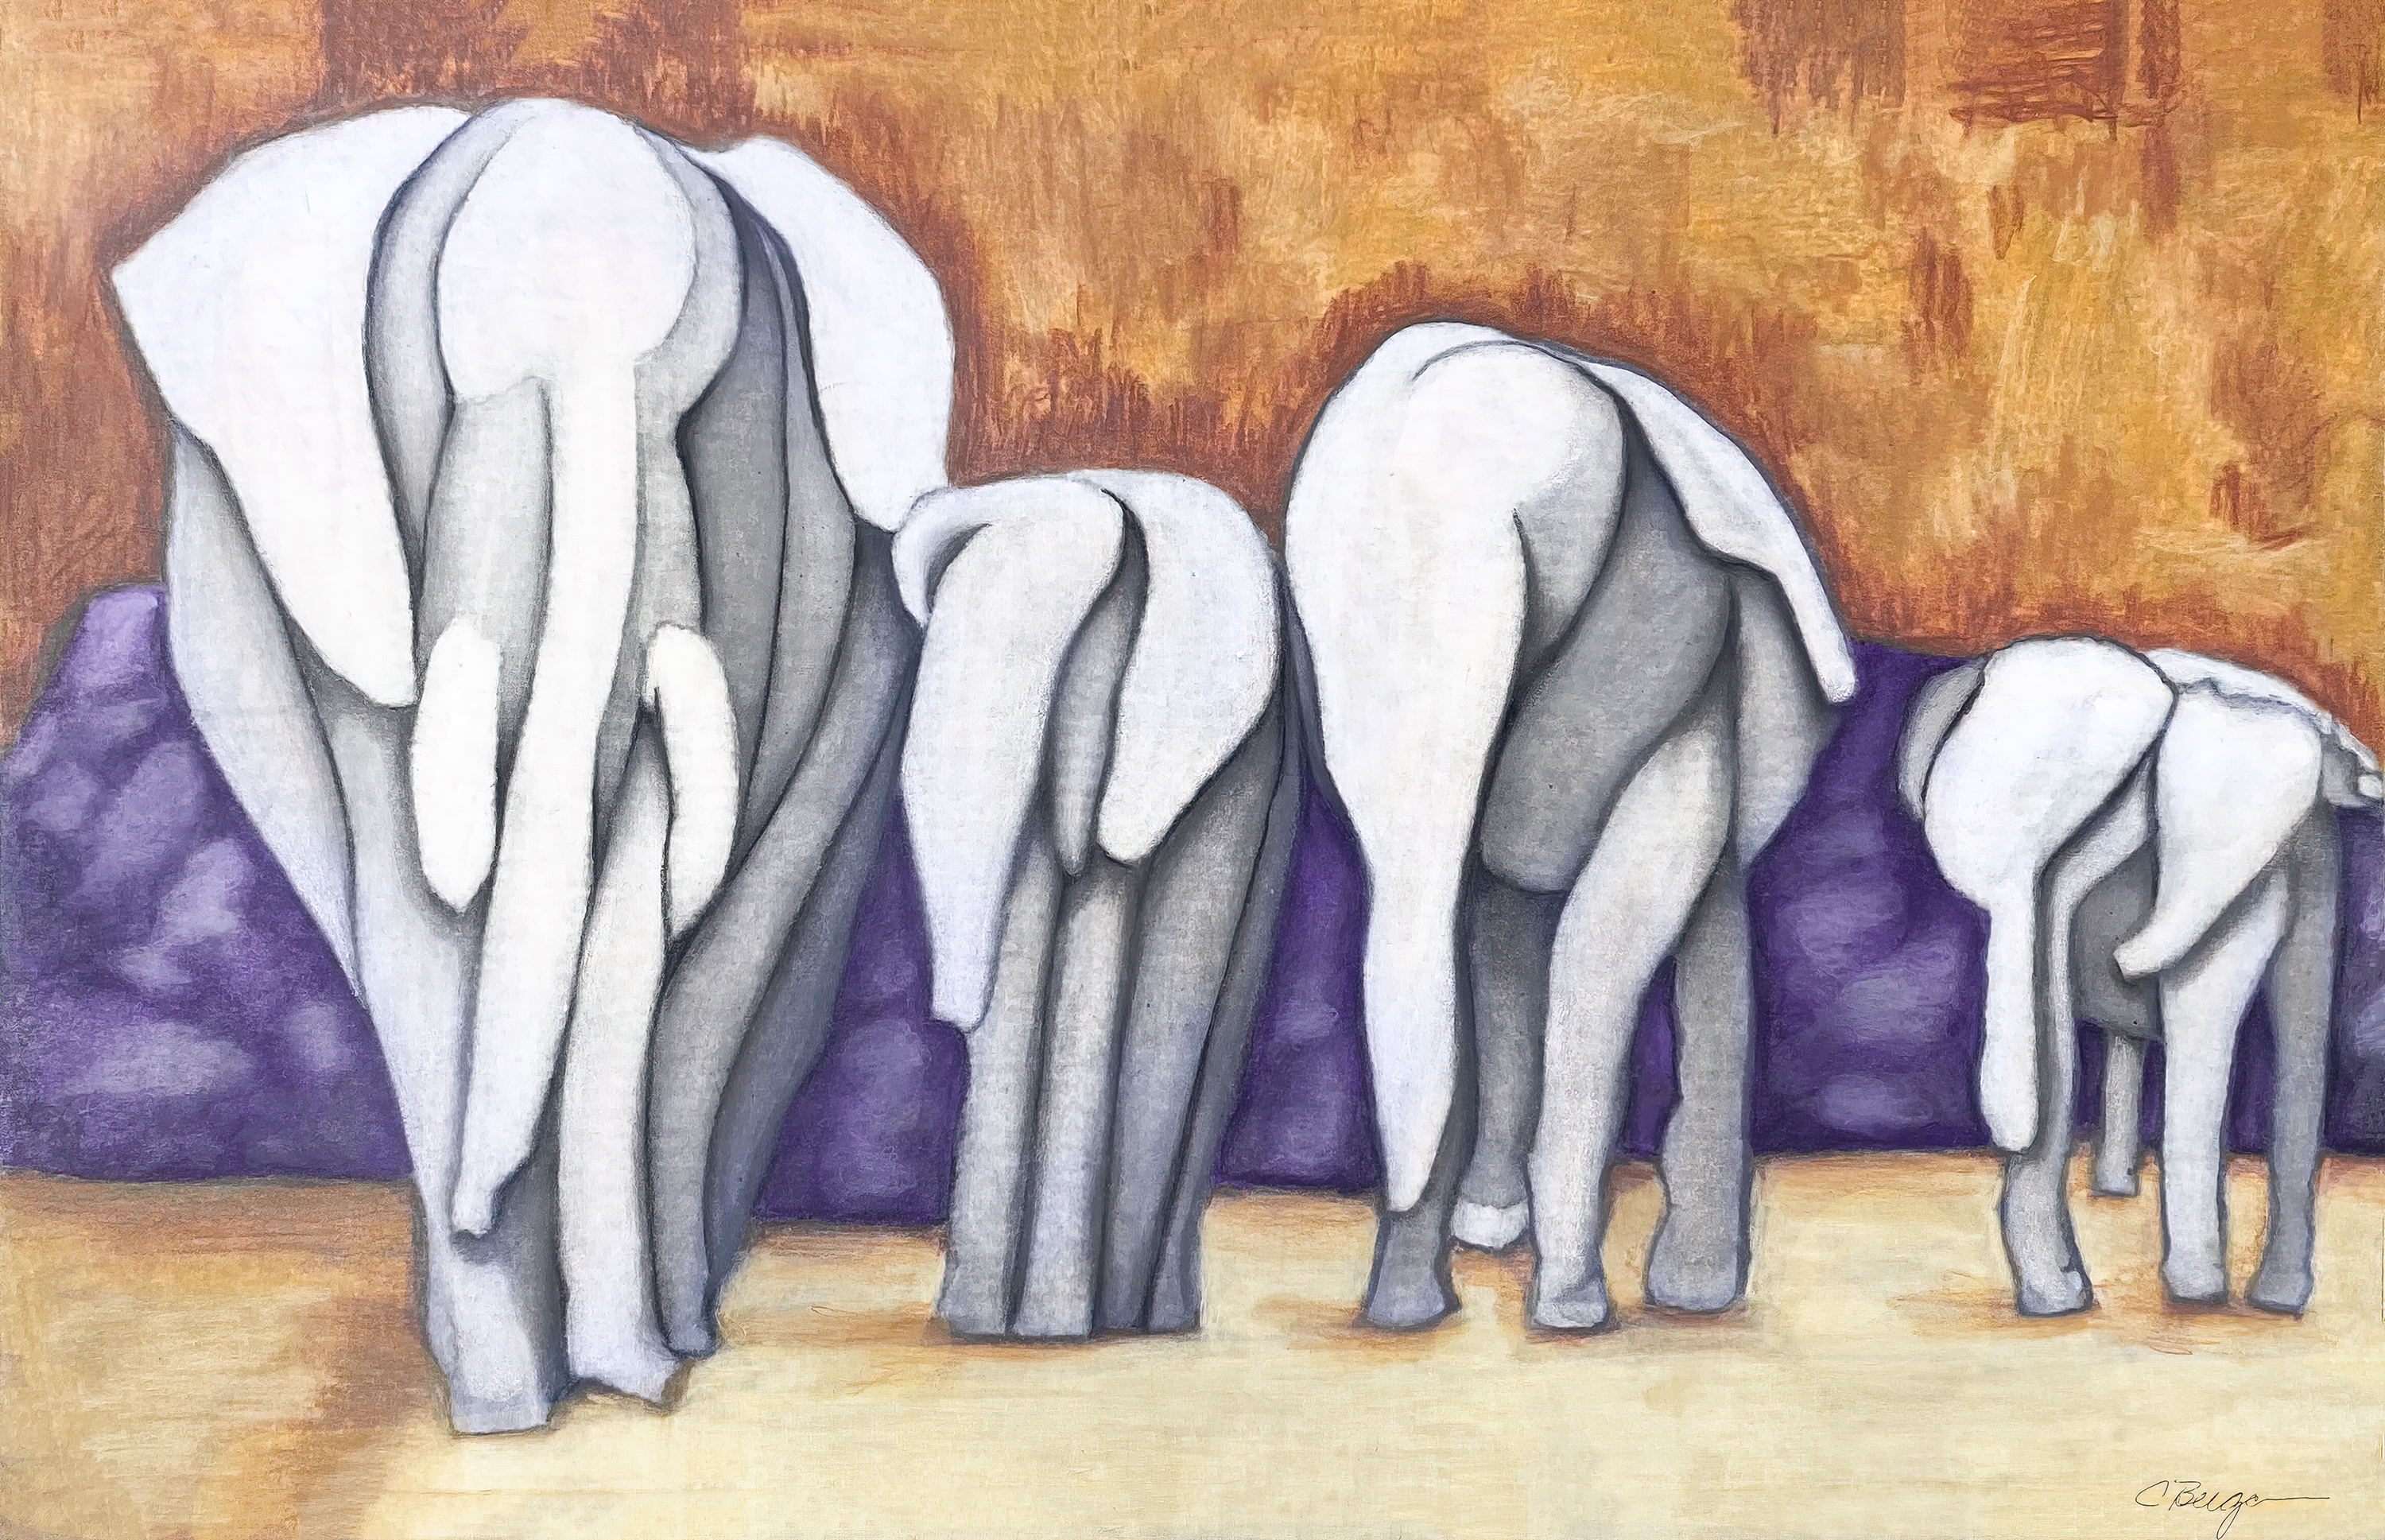 Abstract elephant herd edited small 001 img 4987 sharpen sharpen compressed width 7800px gigapixel lz3leb